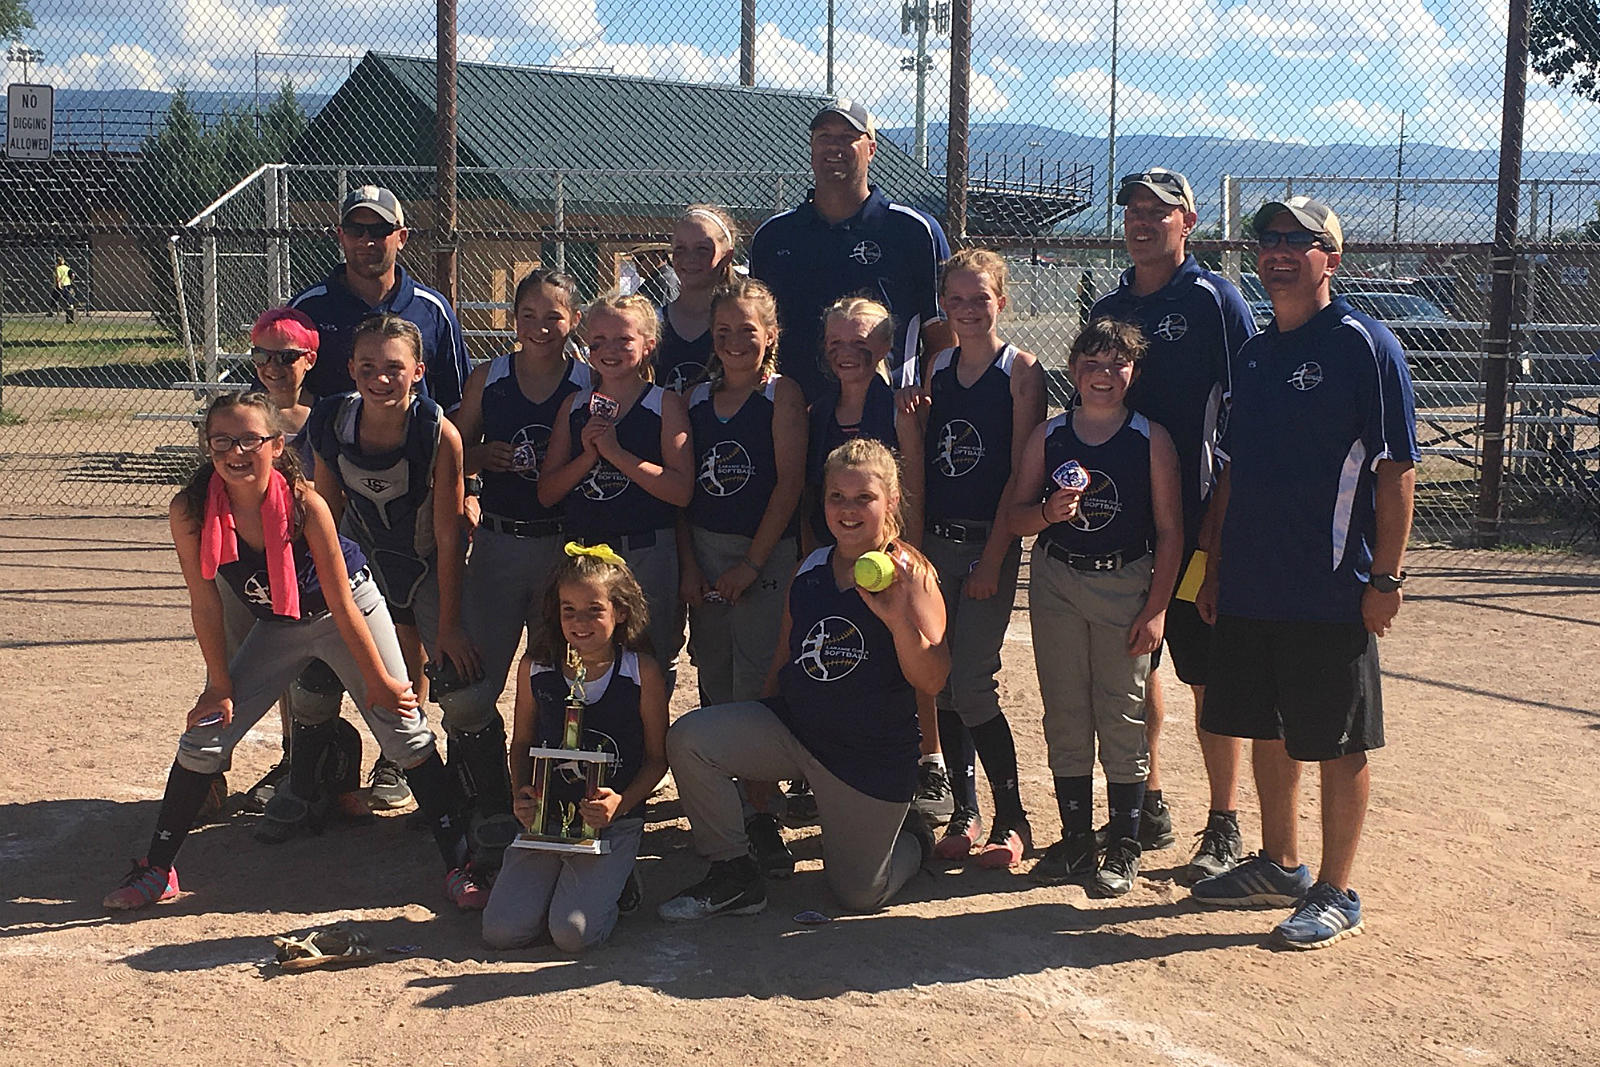 Laramie Wins Two Titles At Fastpitch Softball State Tournament